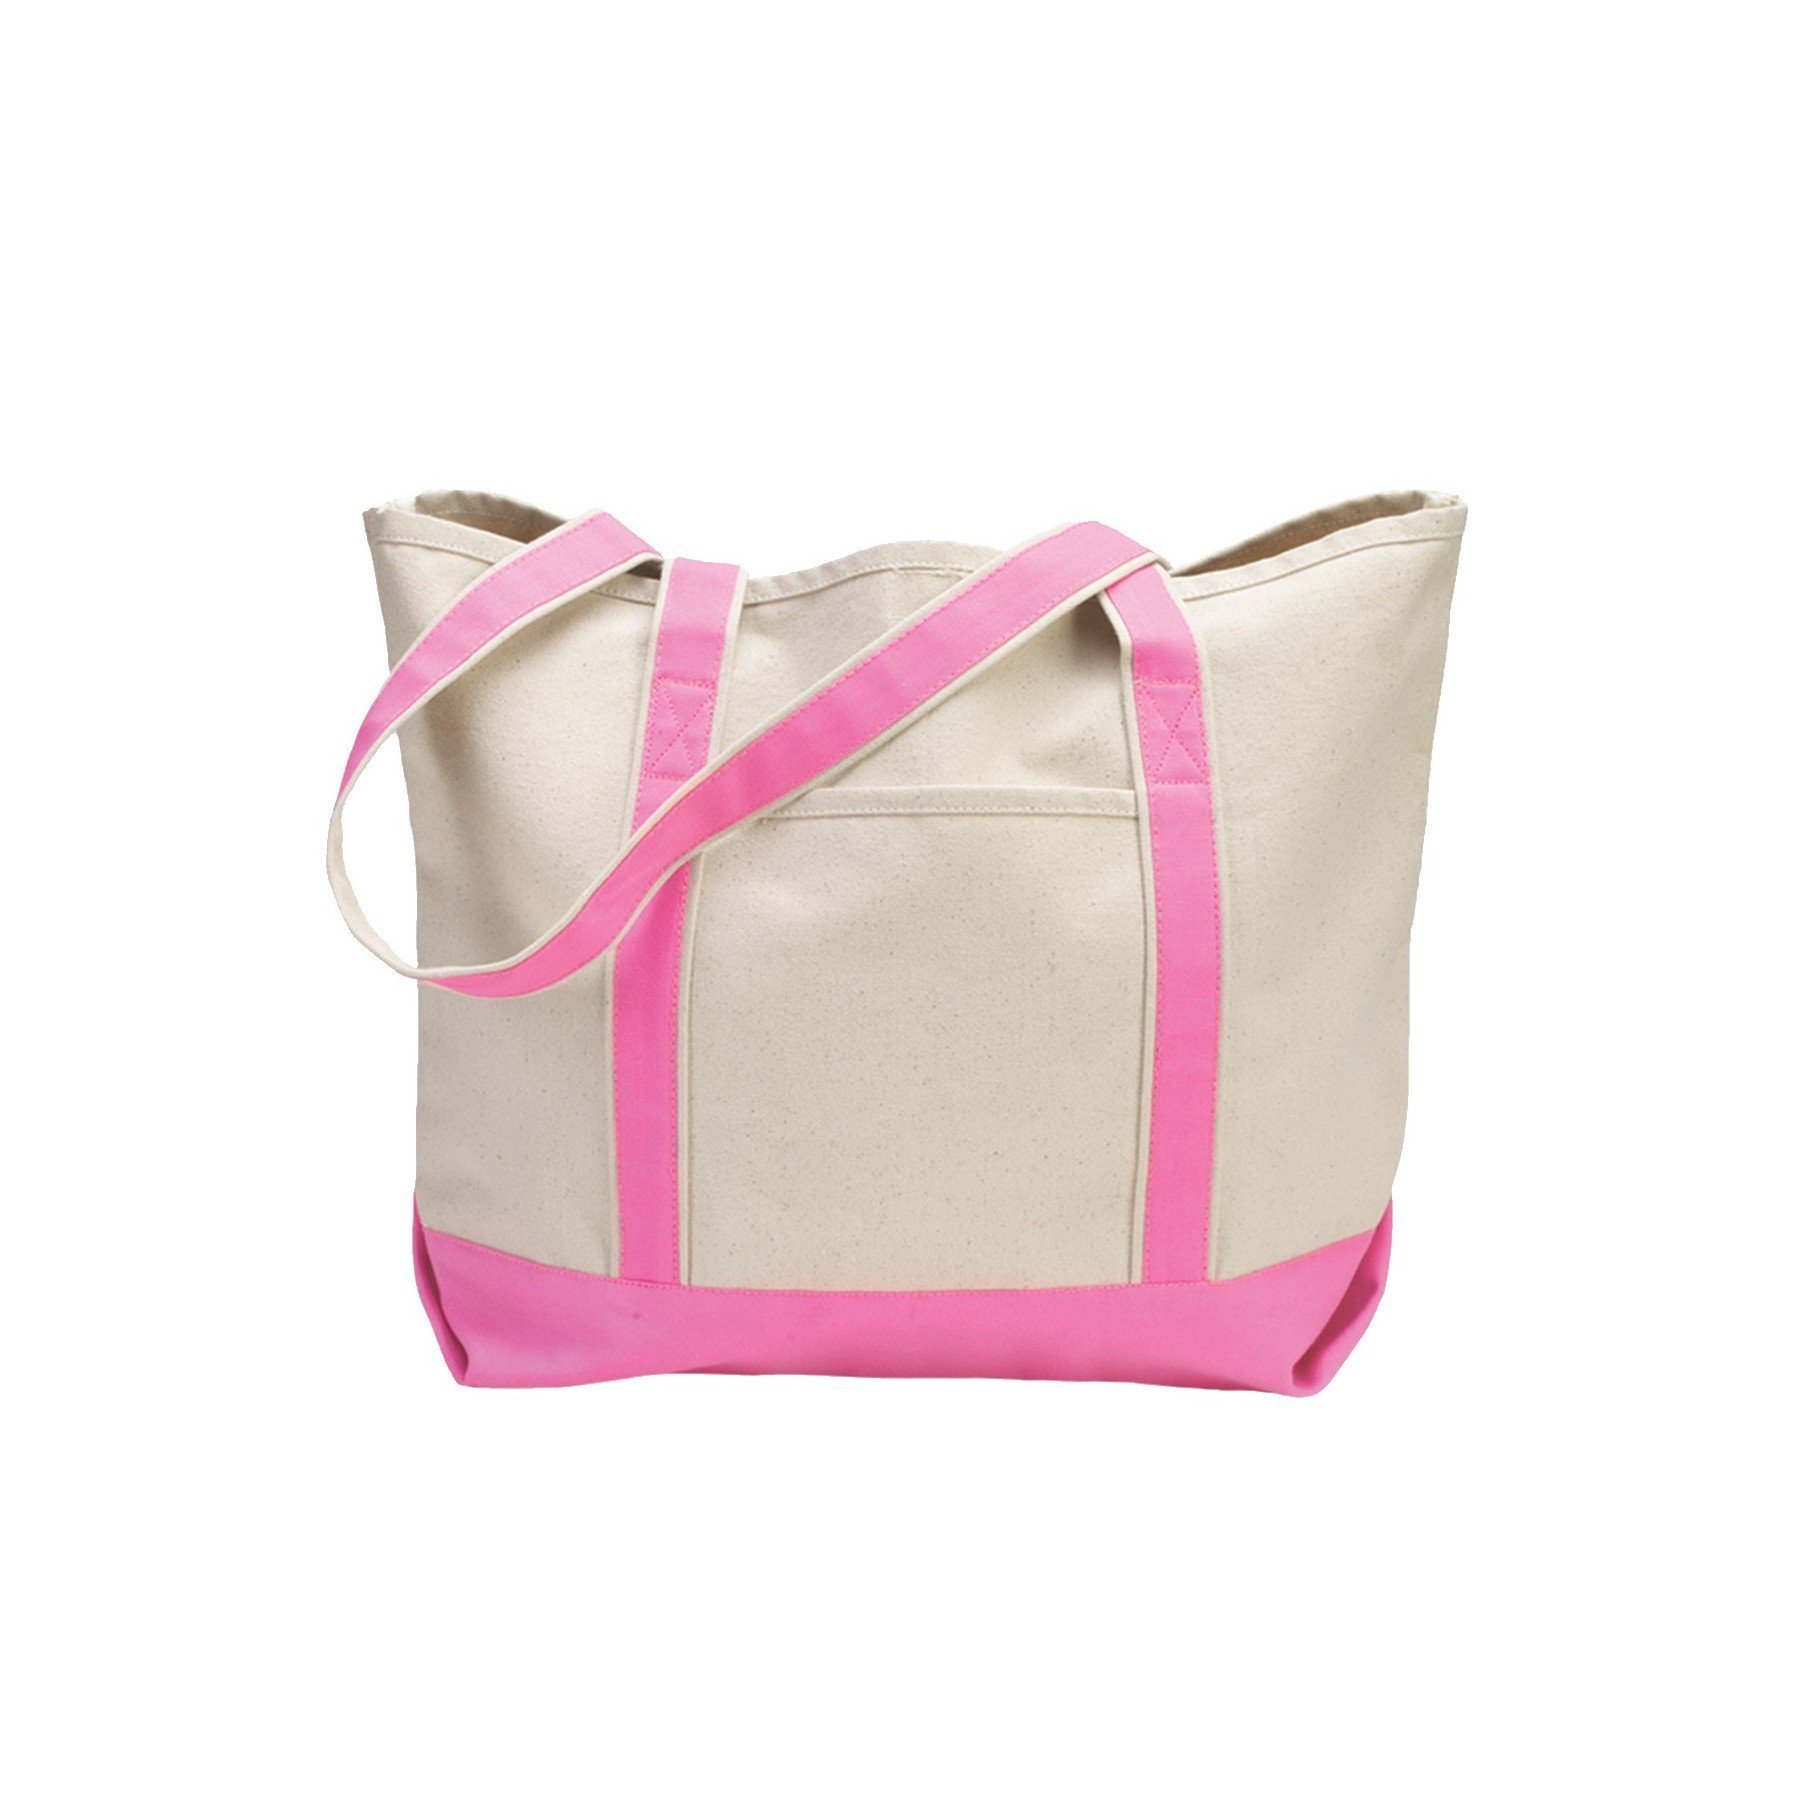 Canvas Tote Beach Bag - Strong Large Bags to Carry Beach Gear and Wet Towels. Large Open Main Compartment With Hook-and-Loop Closure and Shoulder Straps for Easy Carrying (Pink)